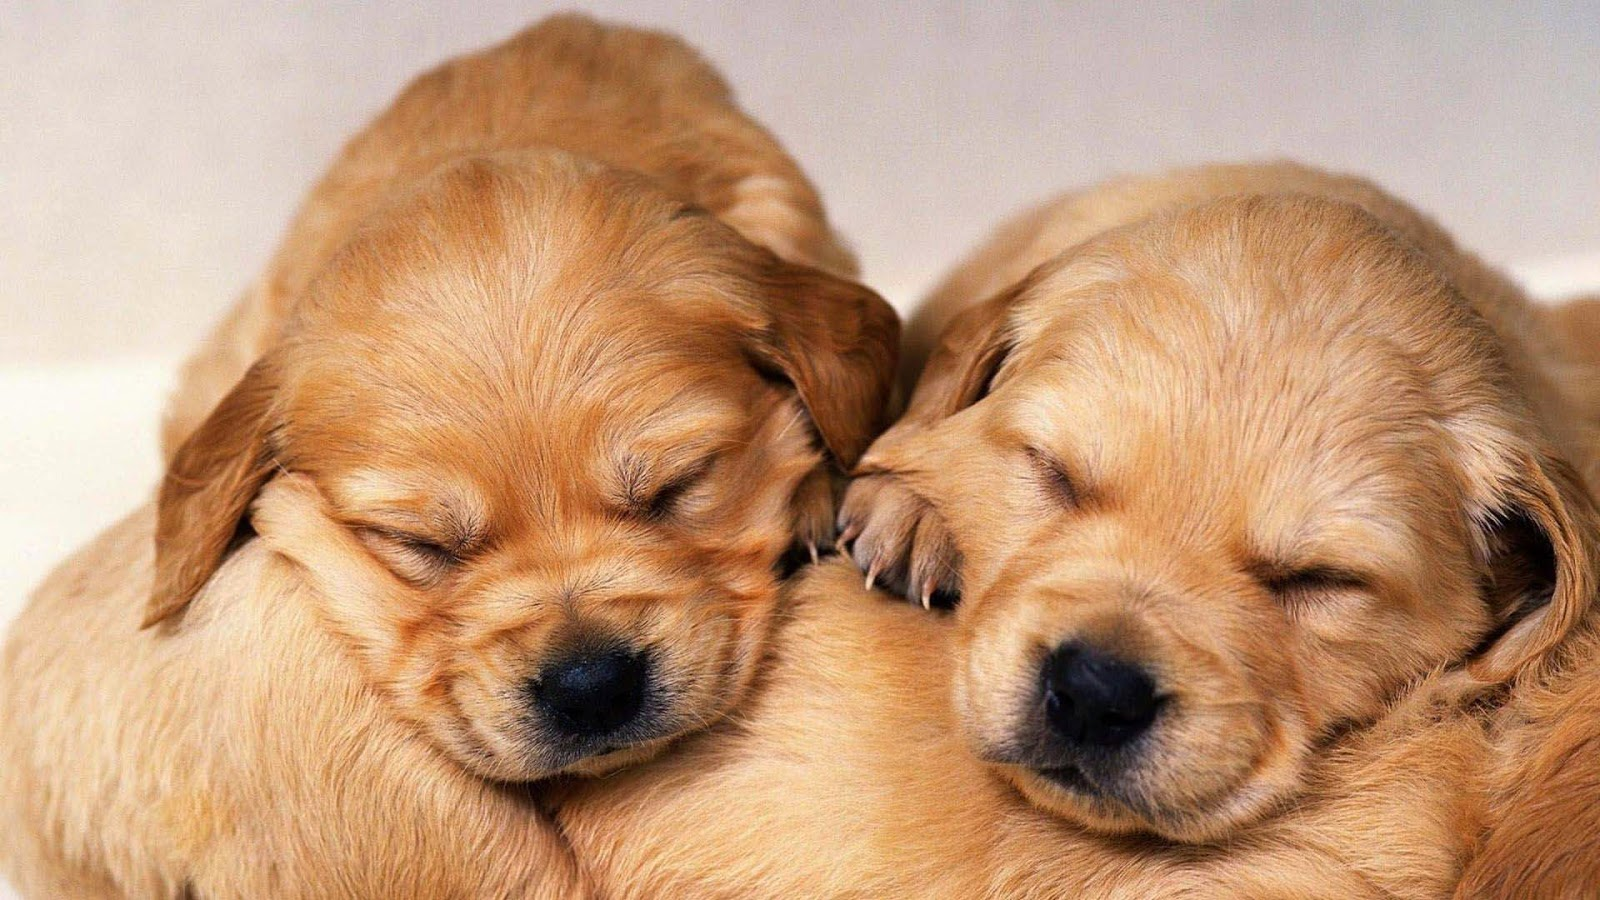 cute golden retriever puppies wallpaper image | free hd wallpaper